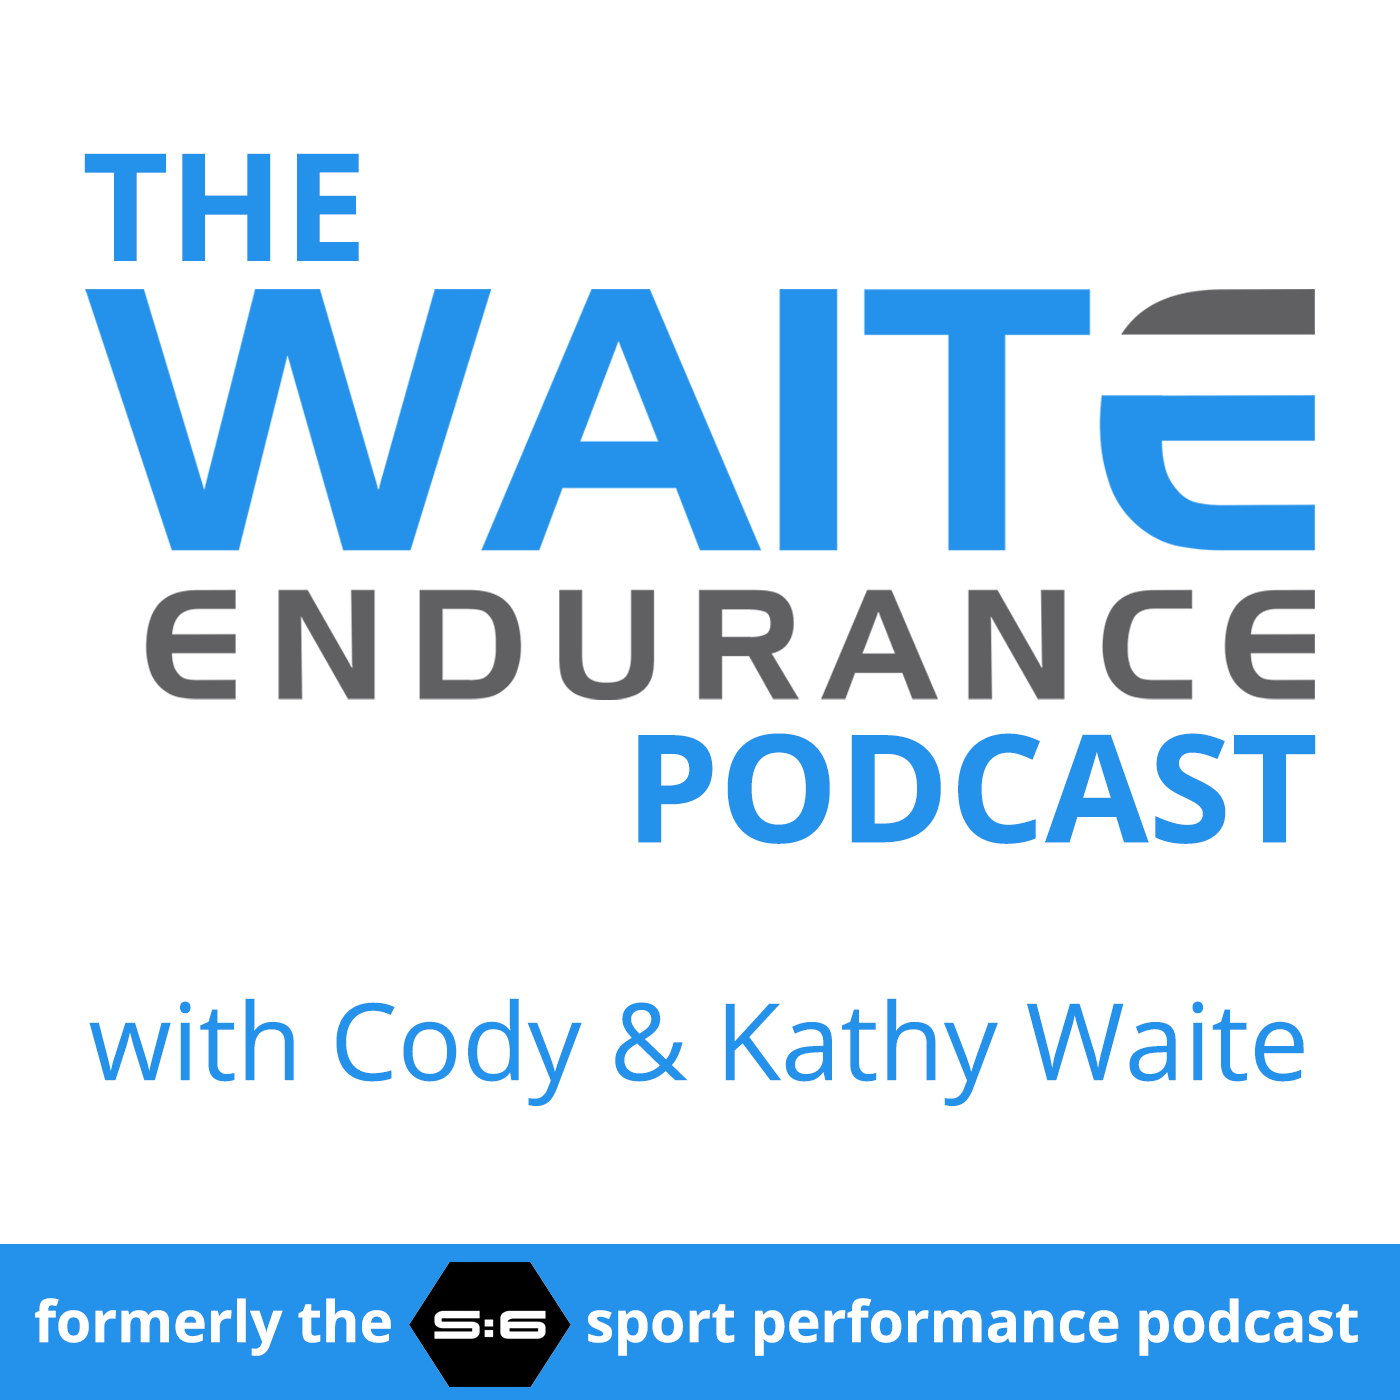 Episode 28: Anaerobic Power Intervals + Base Builder Week 26